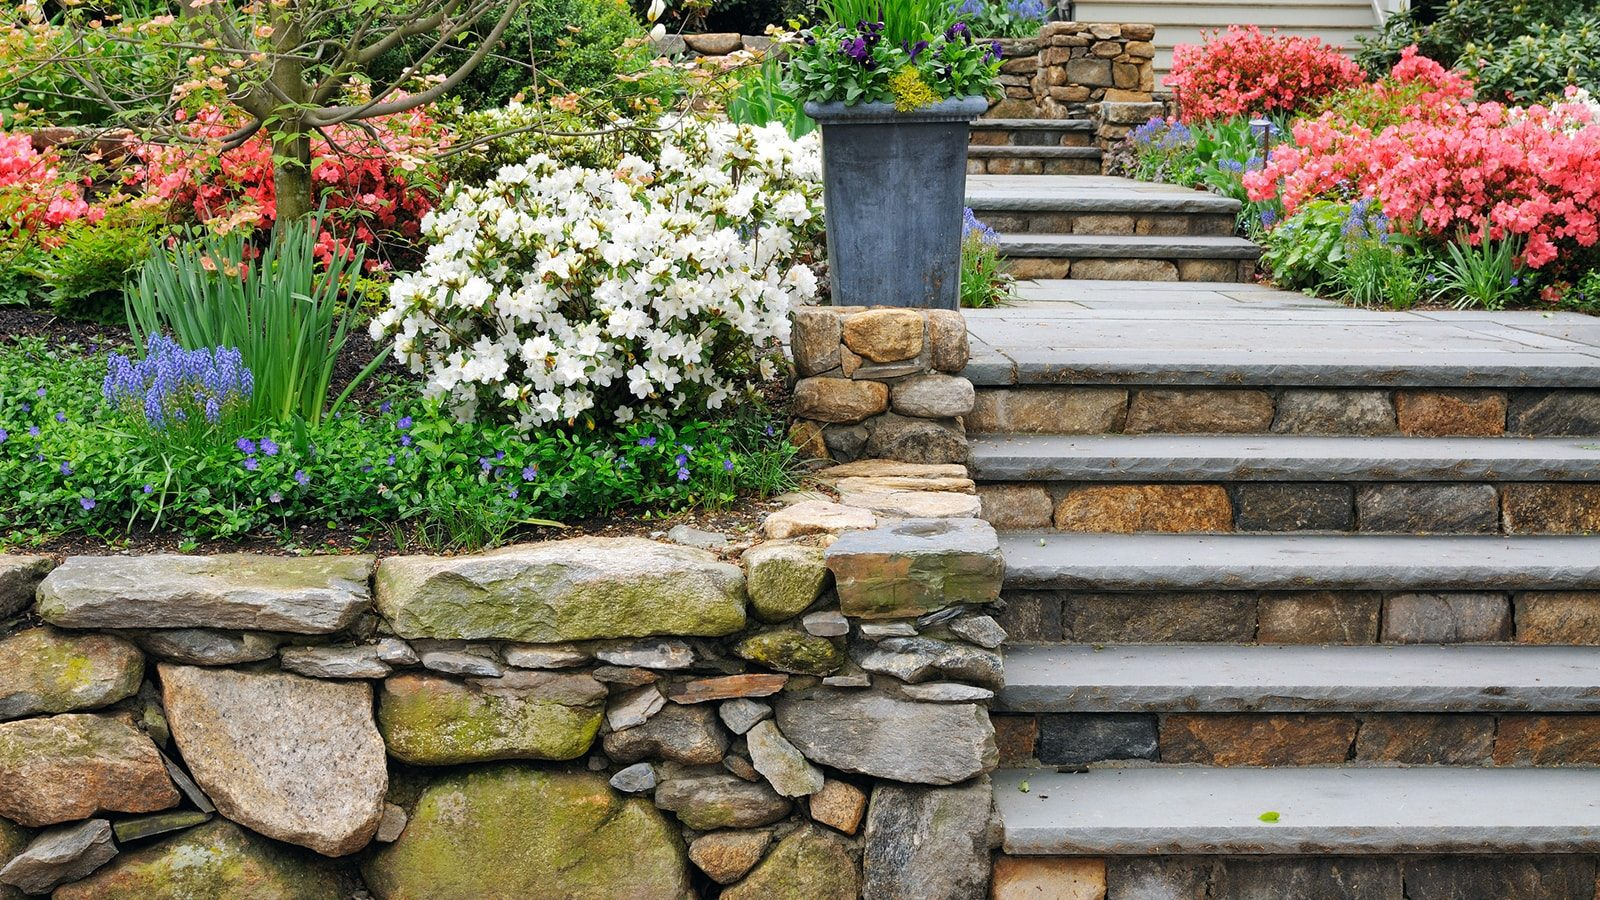 10 Hardscape Ideas to Help Transform Your Outside Space